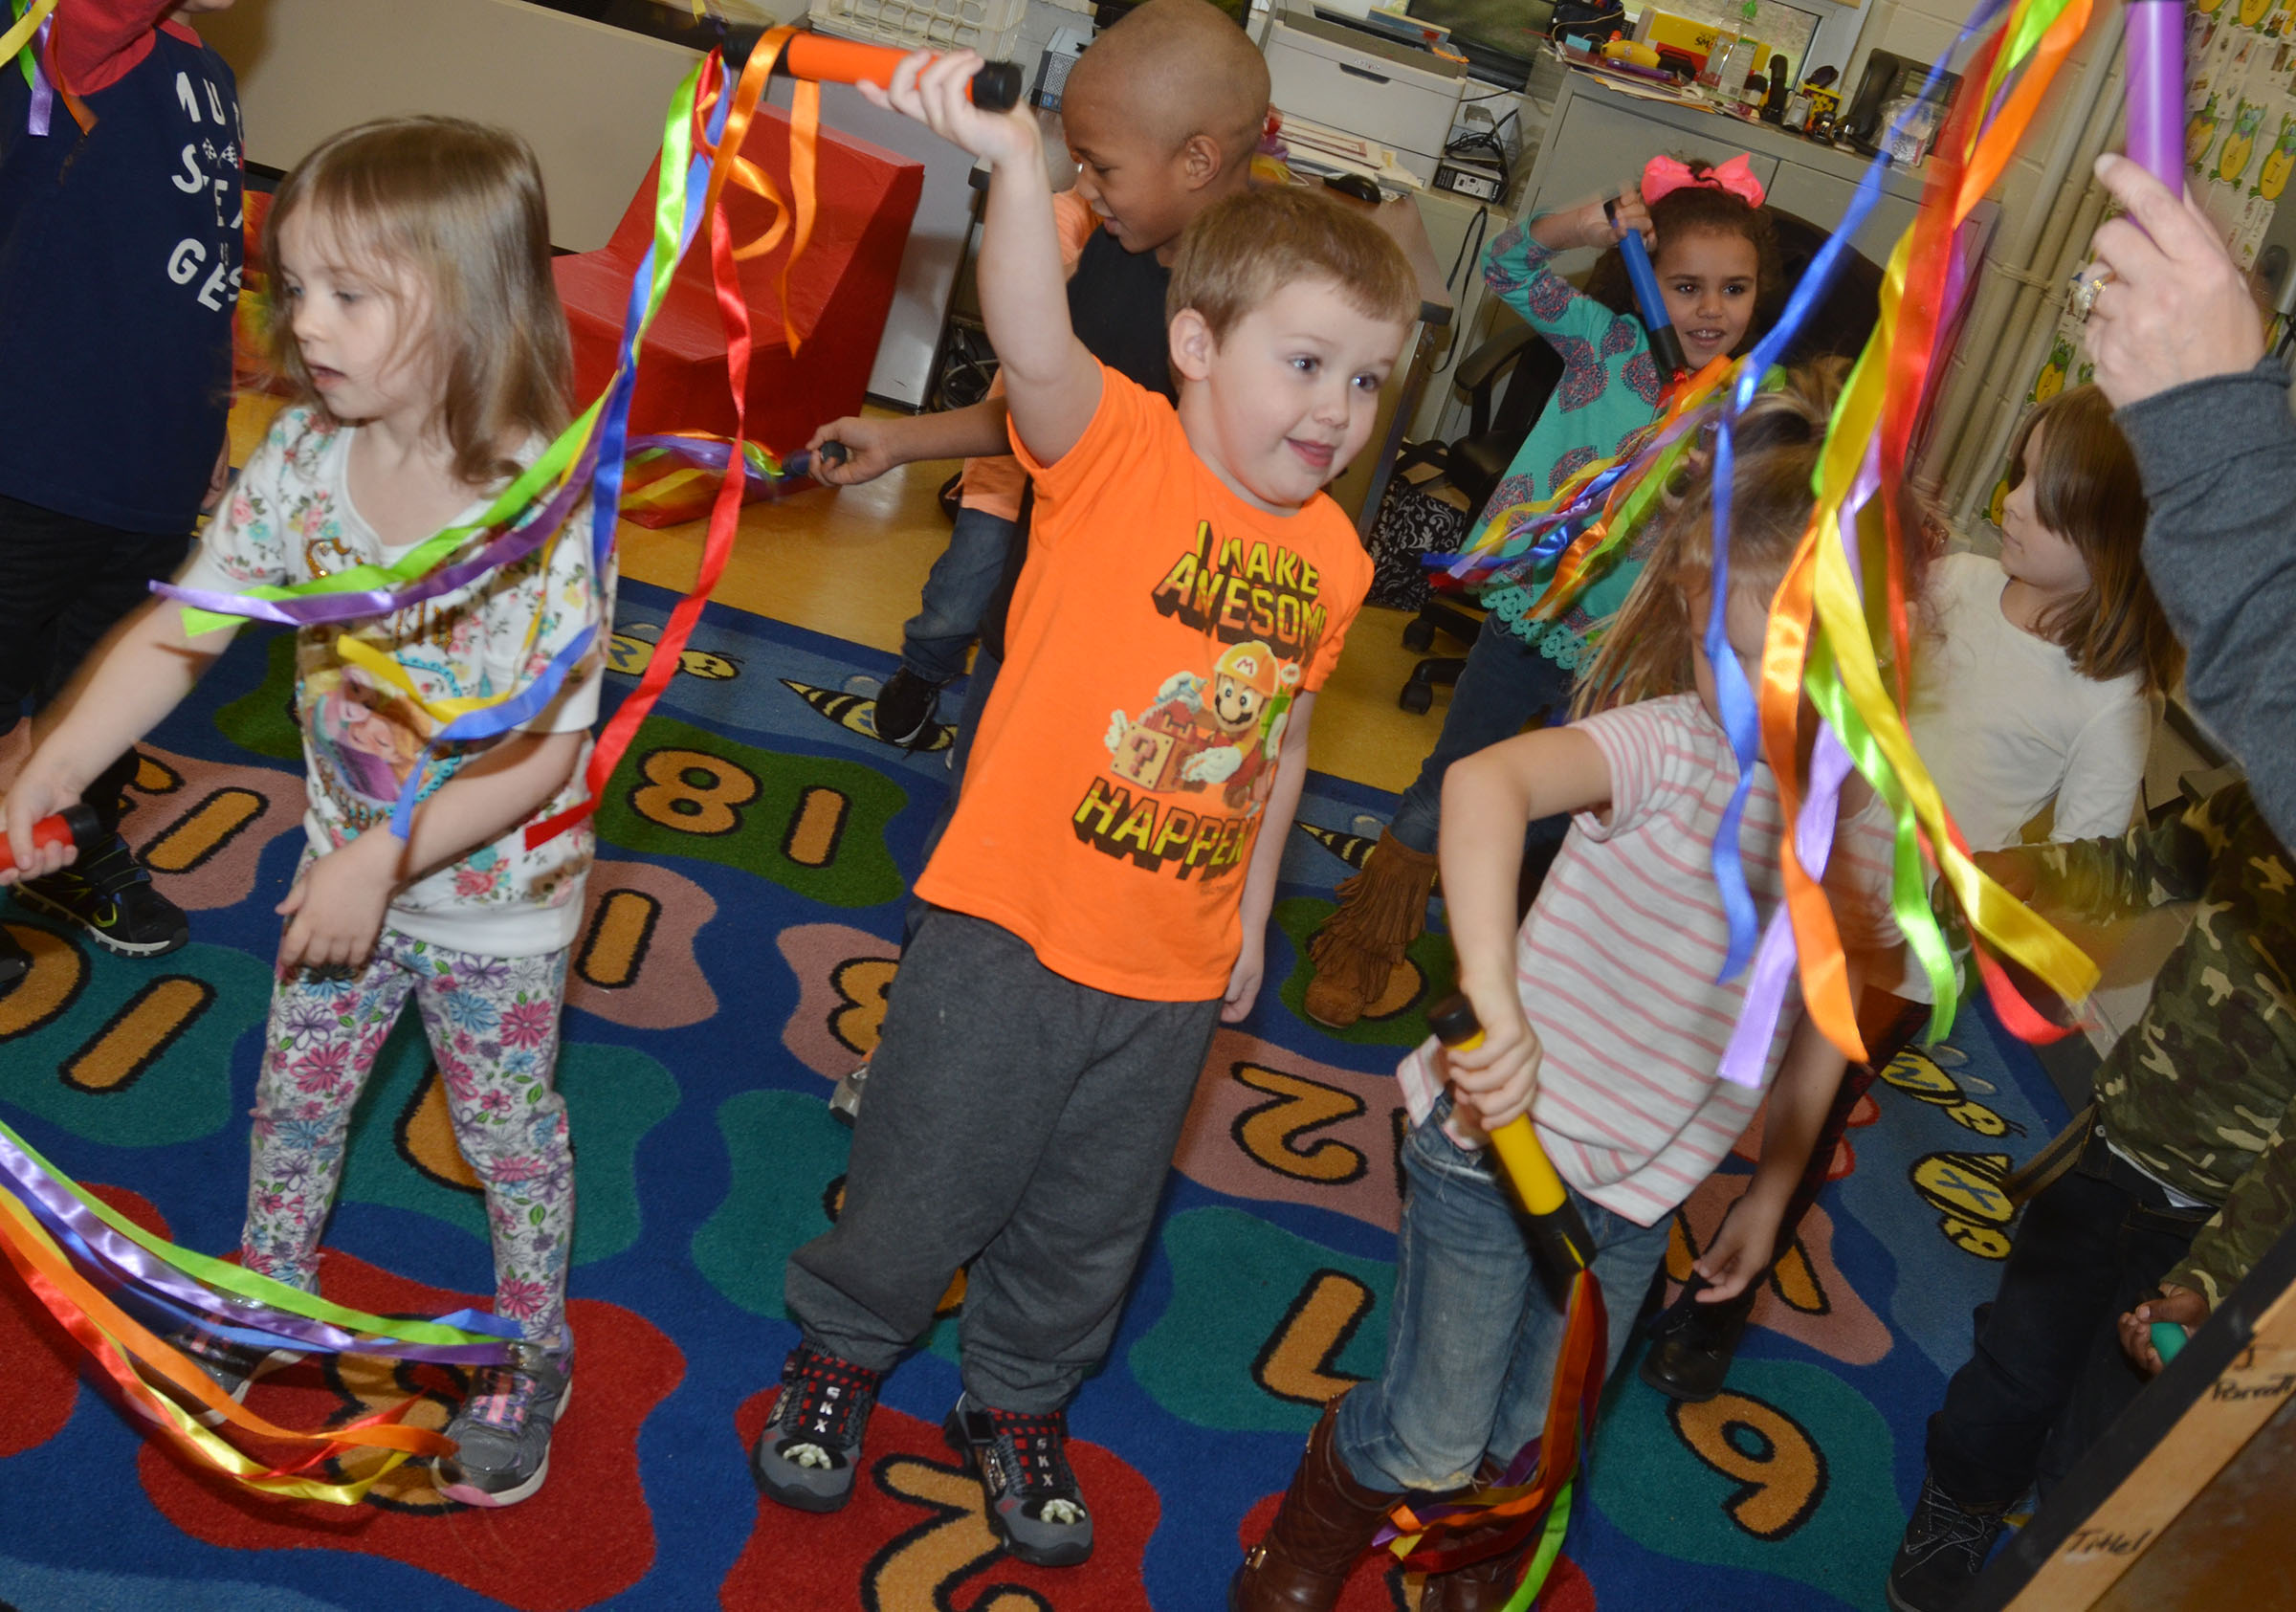 CES preschool student Levi Dye and his classmates dance with their ribbons.